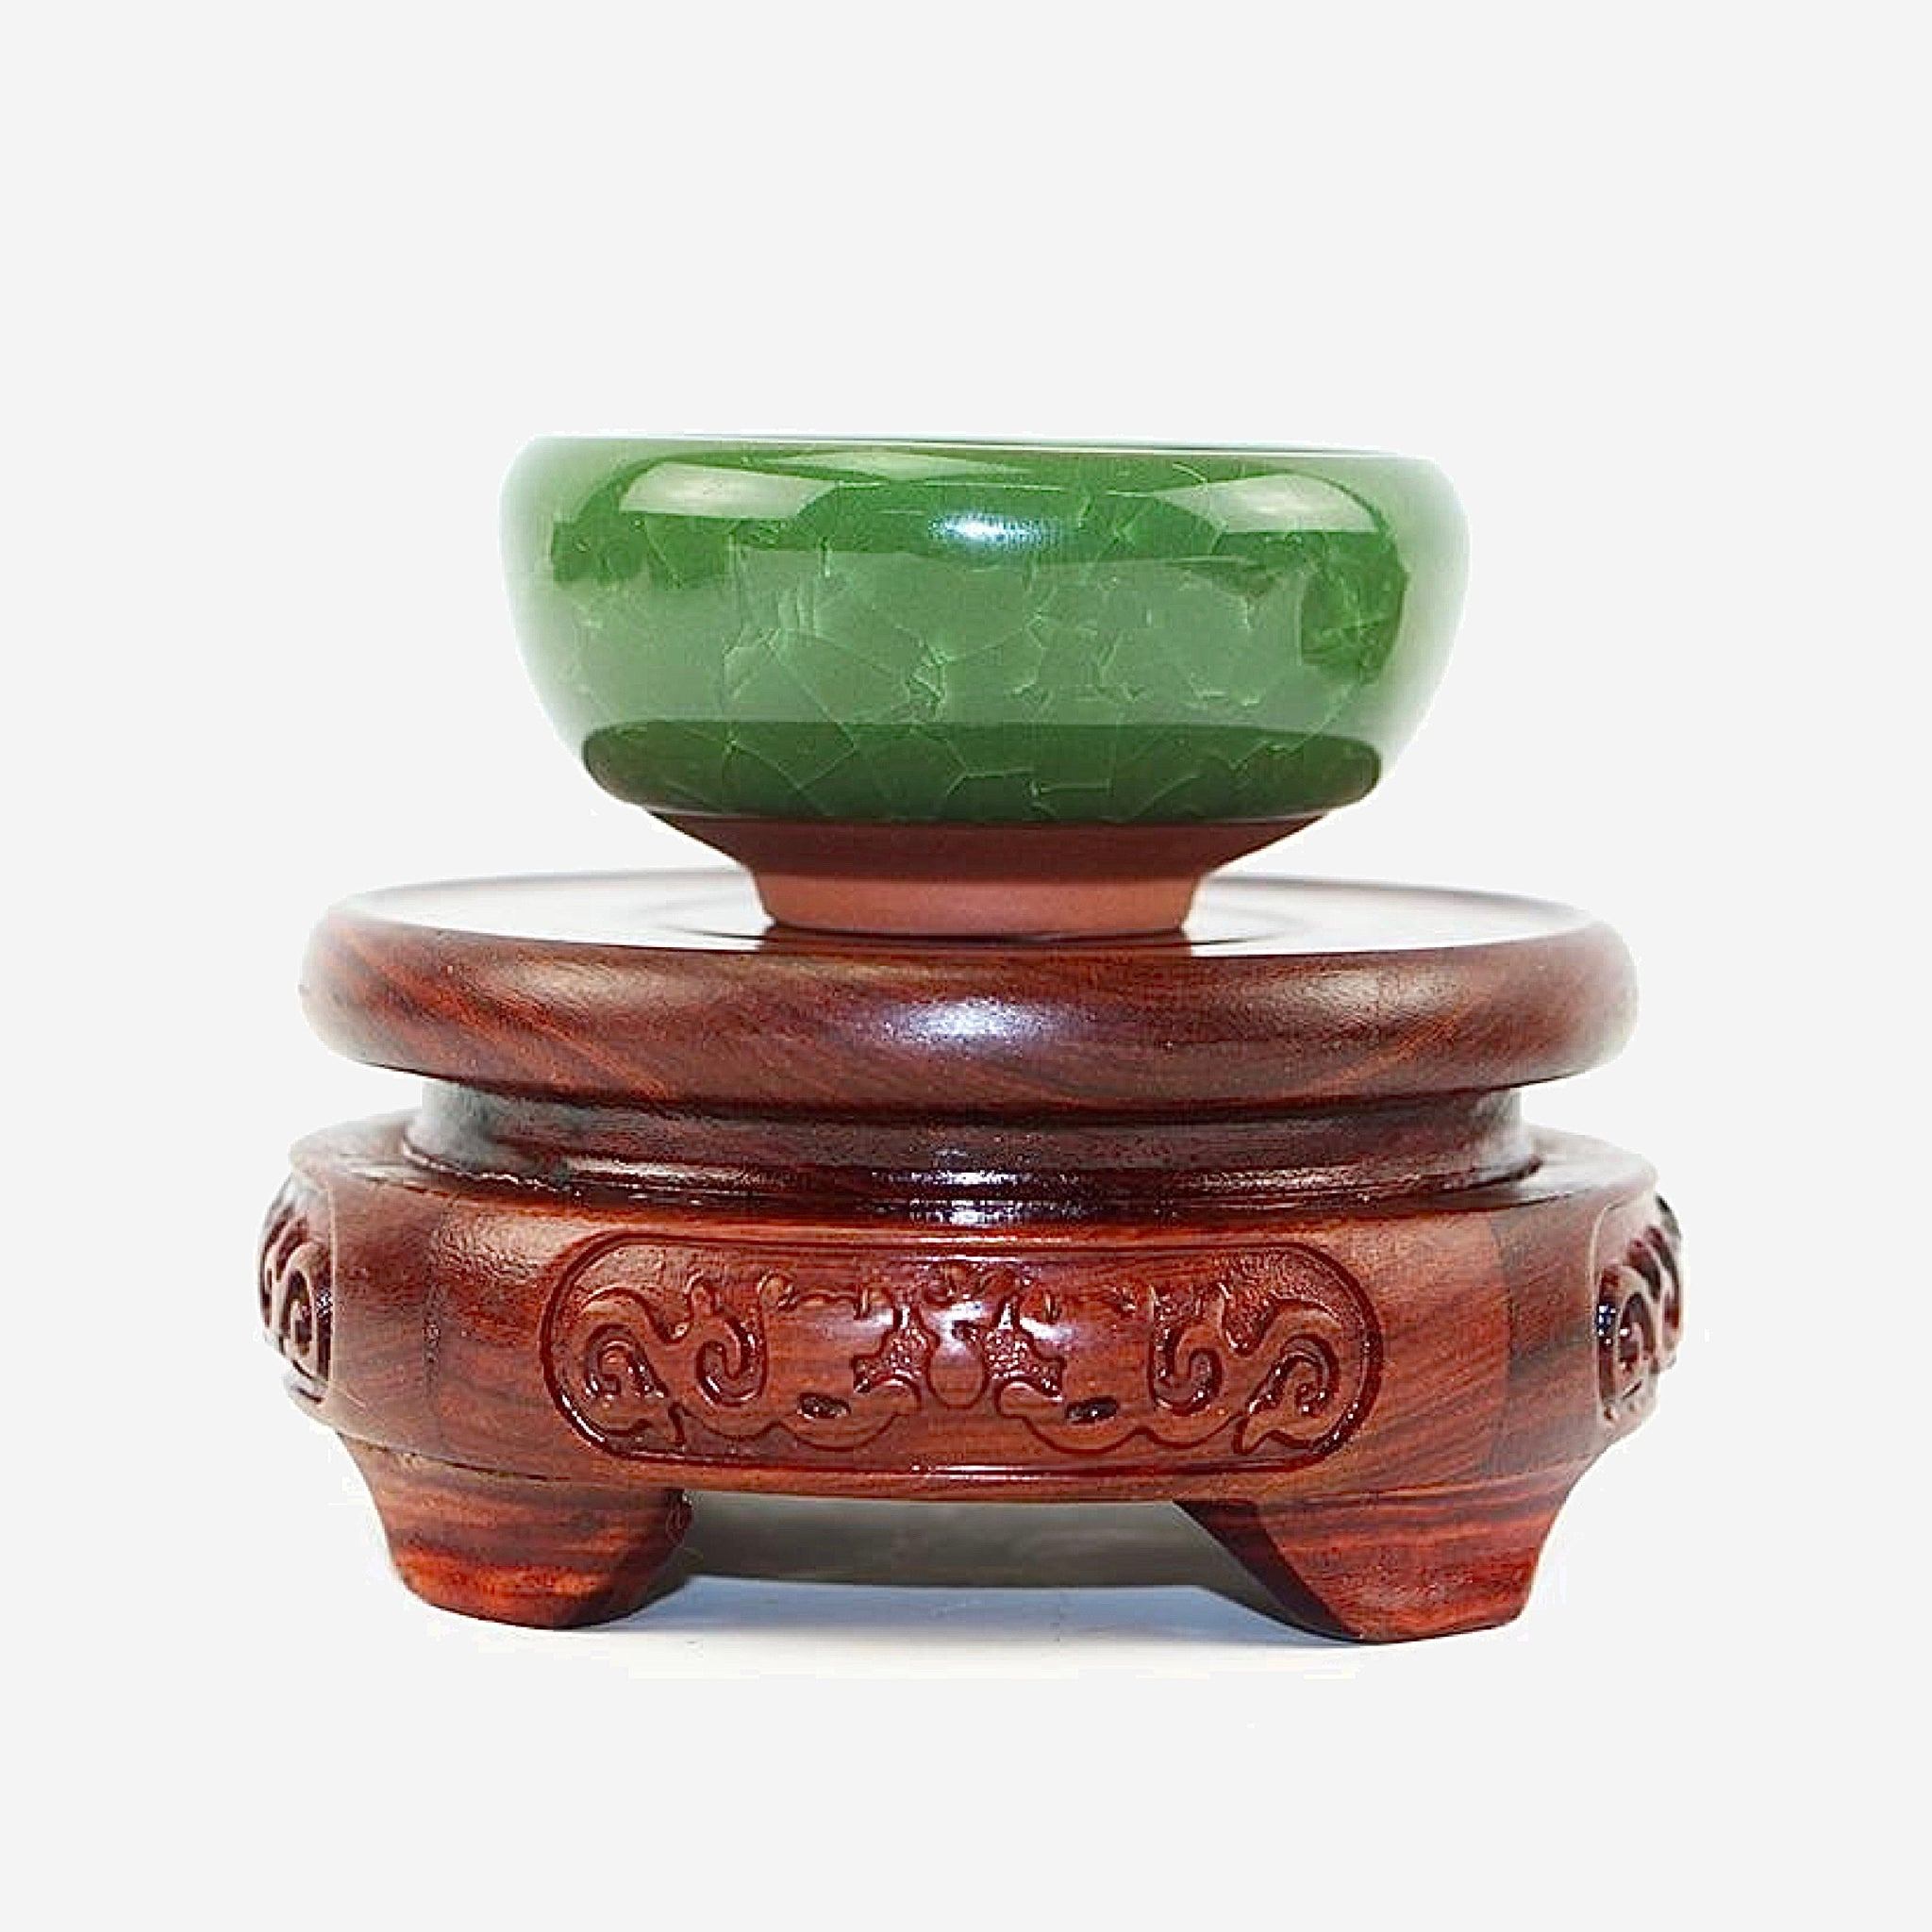 Red Sandalwood Statue Base   6.5-11.5cm Diameter Double Carved Dragon Stone Vase Buddha Incense Flowerpot Wood Carving Teapot Bases Trendy